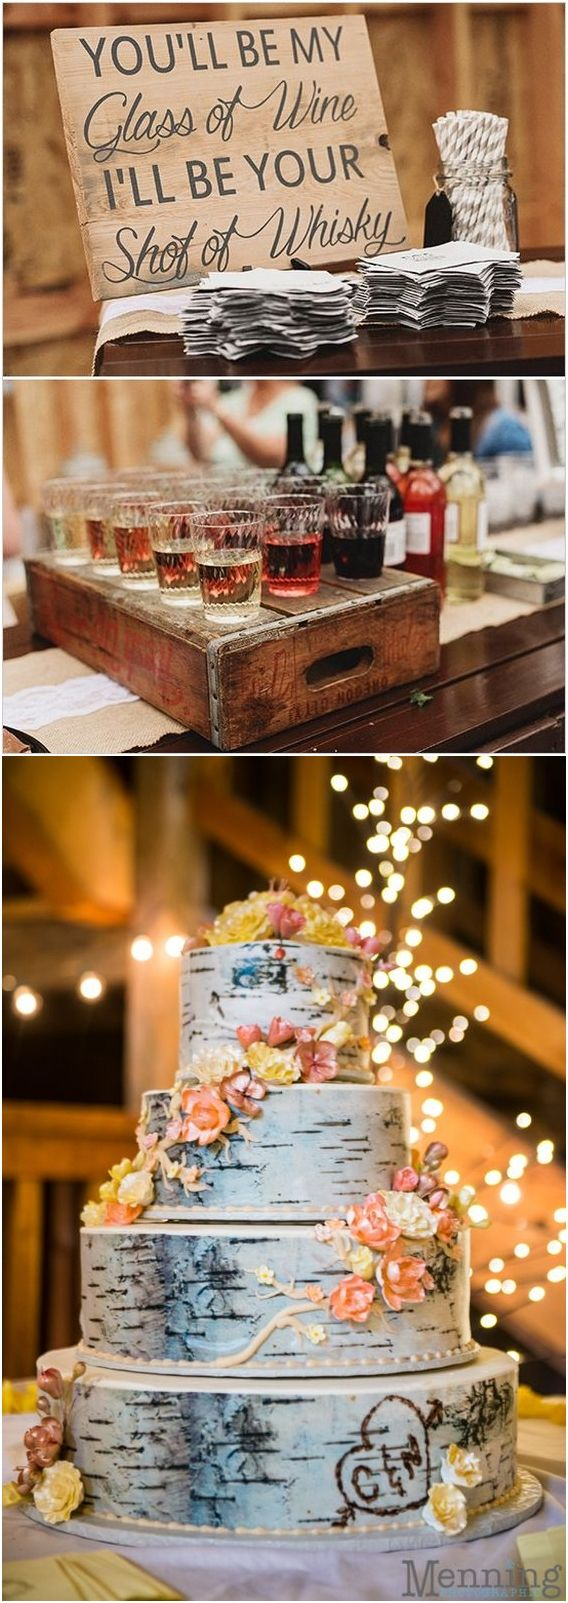 gorgeous country rustic wedding ideas for your big day someday